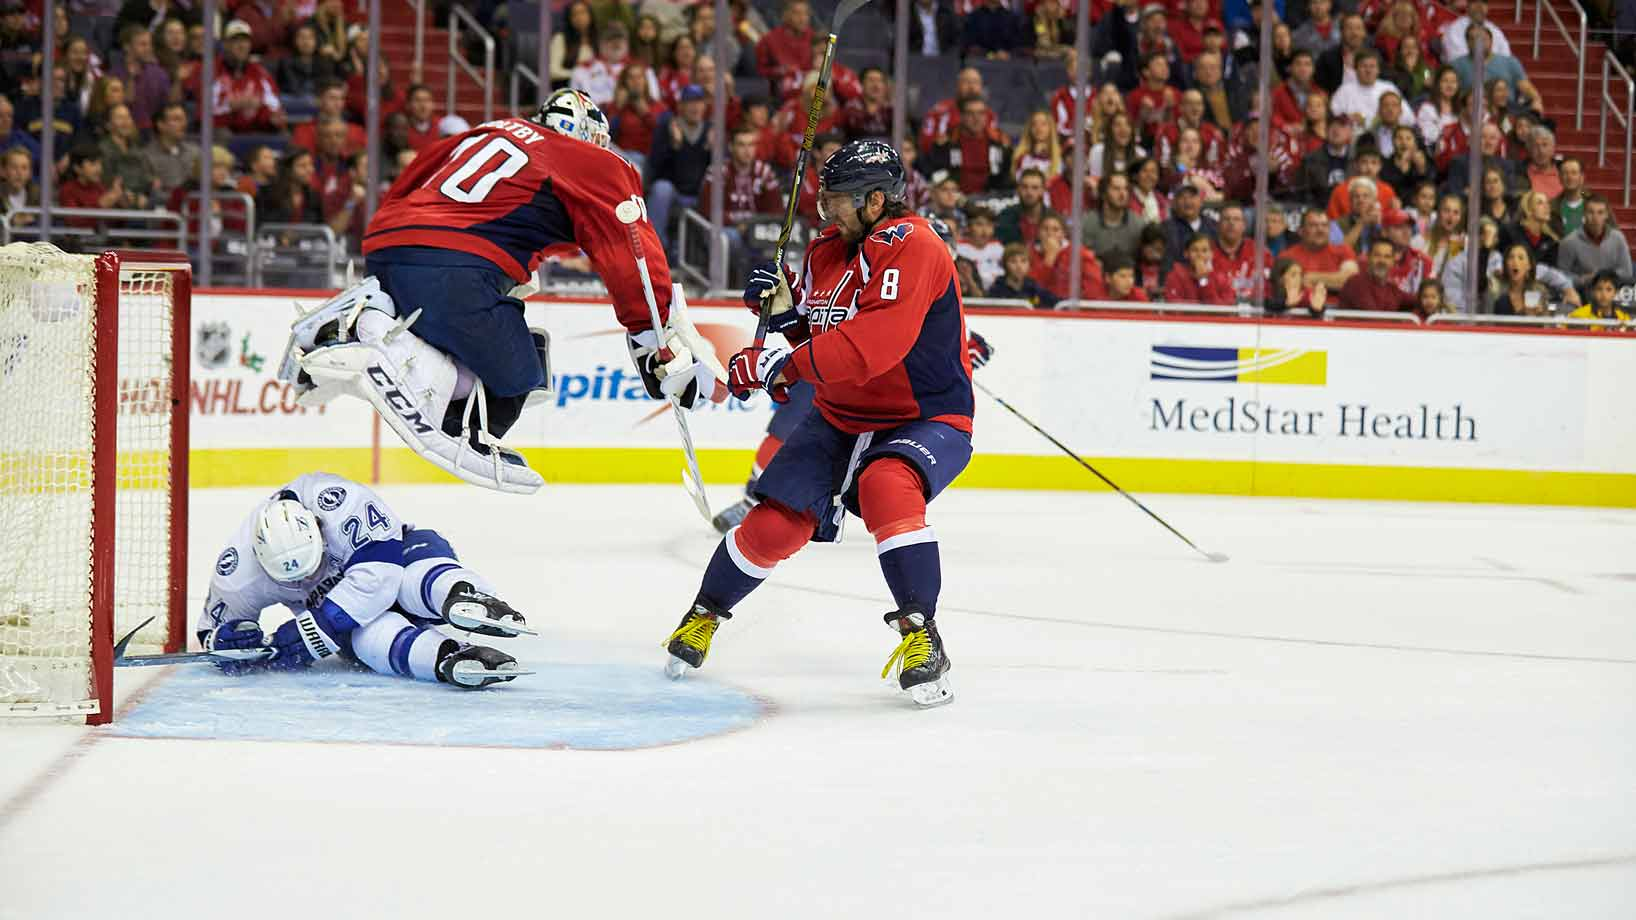 On Nov. 27, 2015 the final horn sounds at 7:46 p.m. as the Capitals beat the Tampa Lightning, 4-2, at home. Goalie Braden Holtby stopped 32 shots and Alex Ovechkin (right) scored his 12th goal of the season.